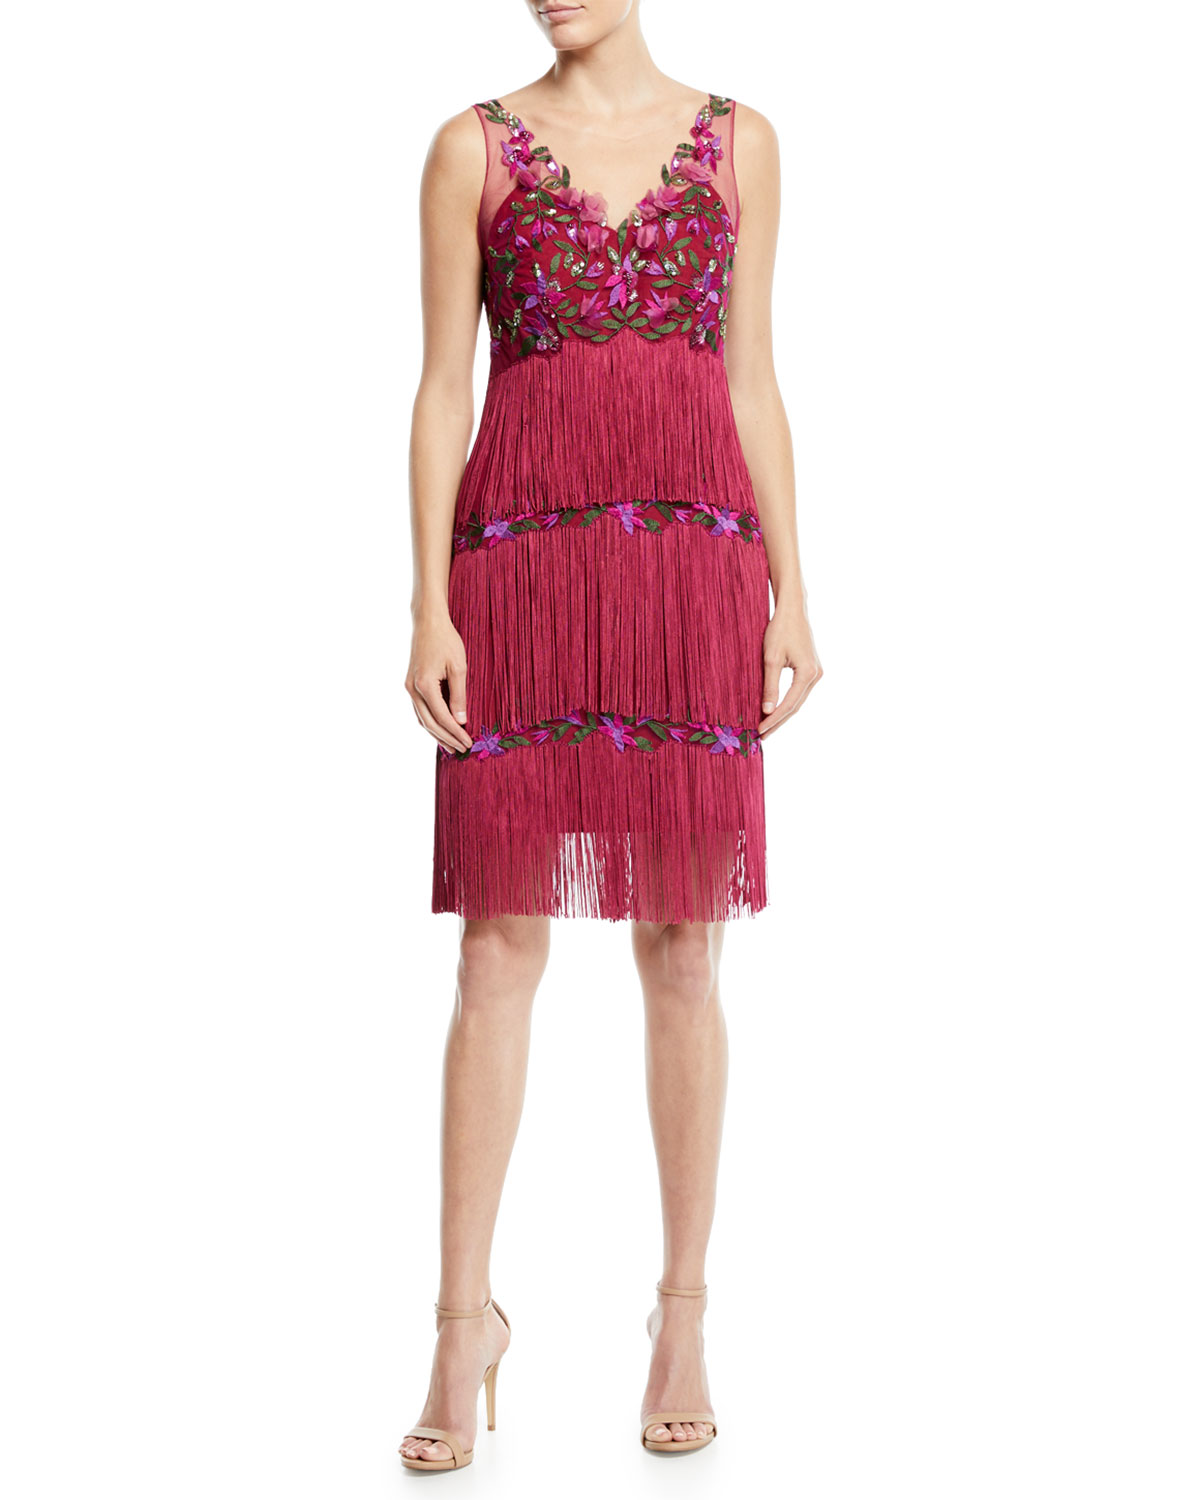 7abf9d7d5f Marchesa Notte Sleeveless Embroidered Fringe Dress | Neiman Marcus